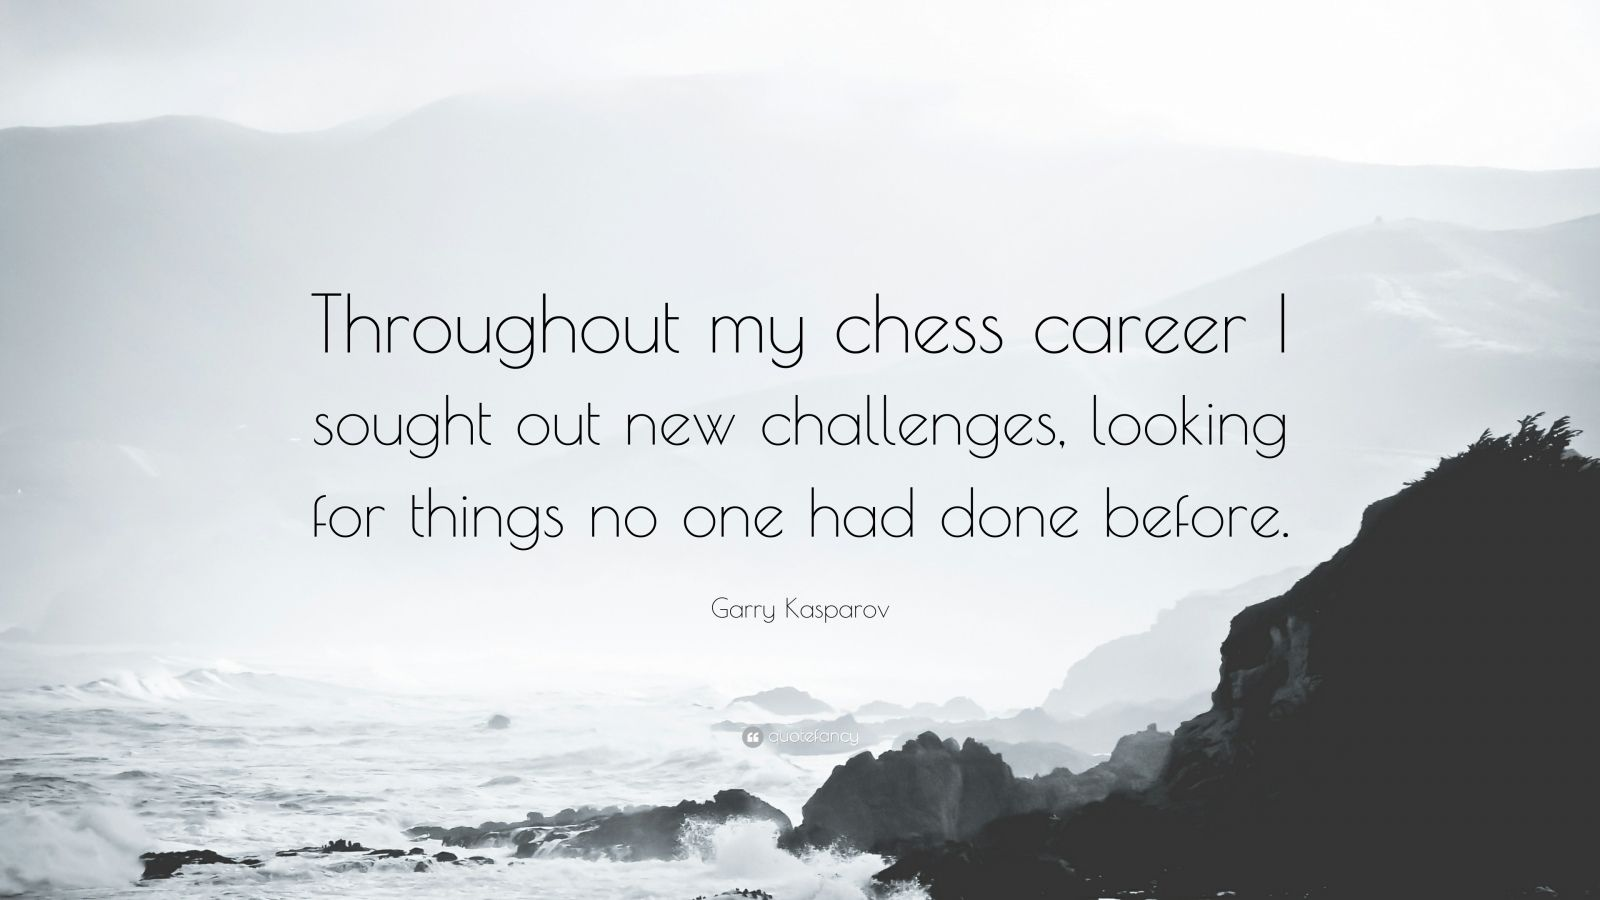 """Garry Kasparov Quote: """"Throughout my chess career I sought out new challenges, looking for things no one had done before."""""""